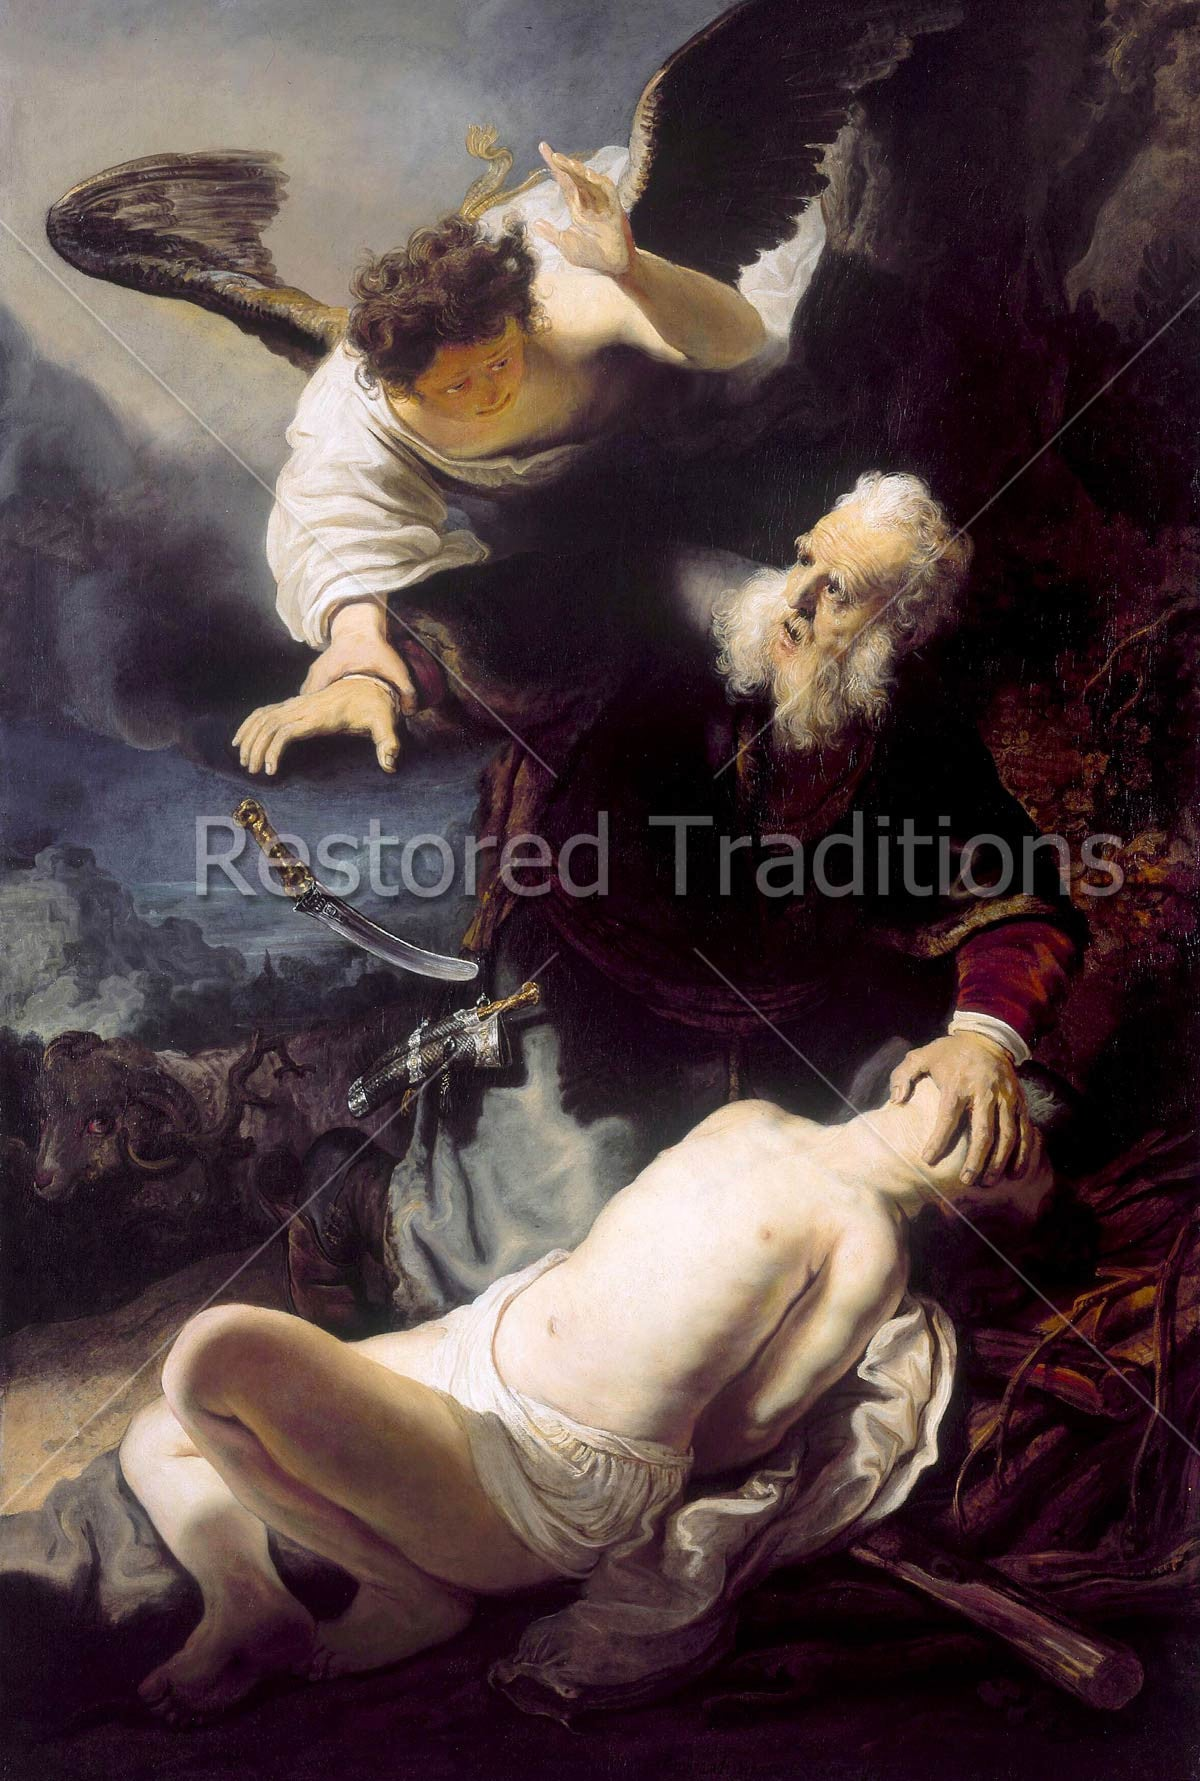 stock images of bible art royalty free restored traditions